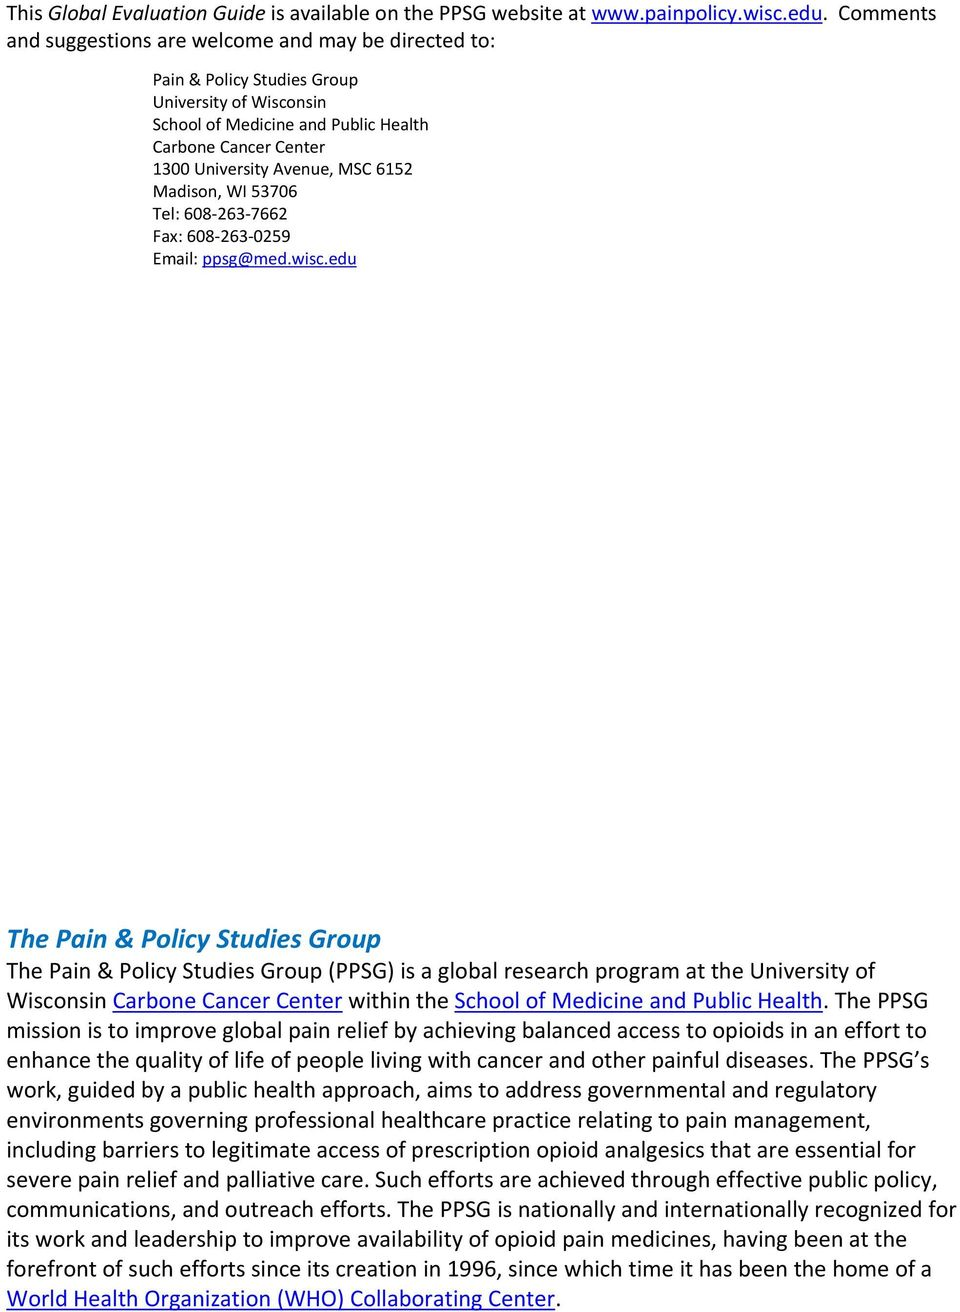 Group The Pain & Policy Studies Group (PPSG) is a global research program at the University of Wisconsin Carbone Cancer Center within the School of Medicine and Public Health The PPSG mission is to